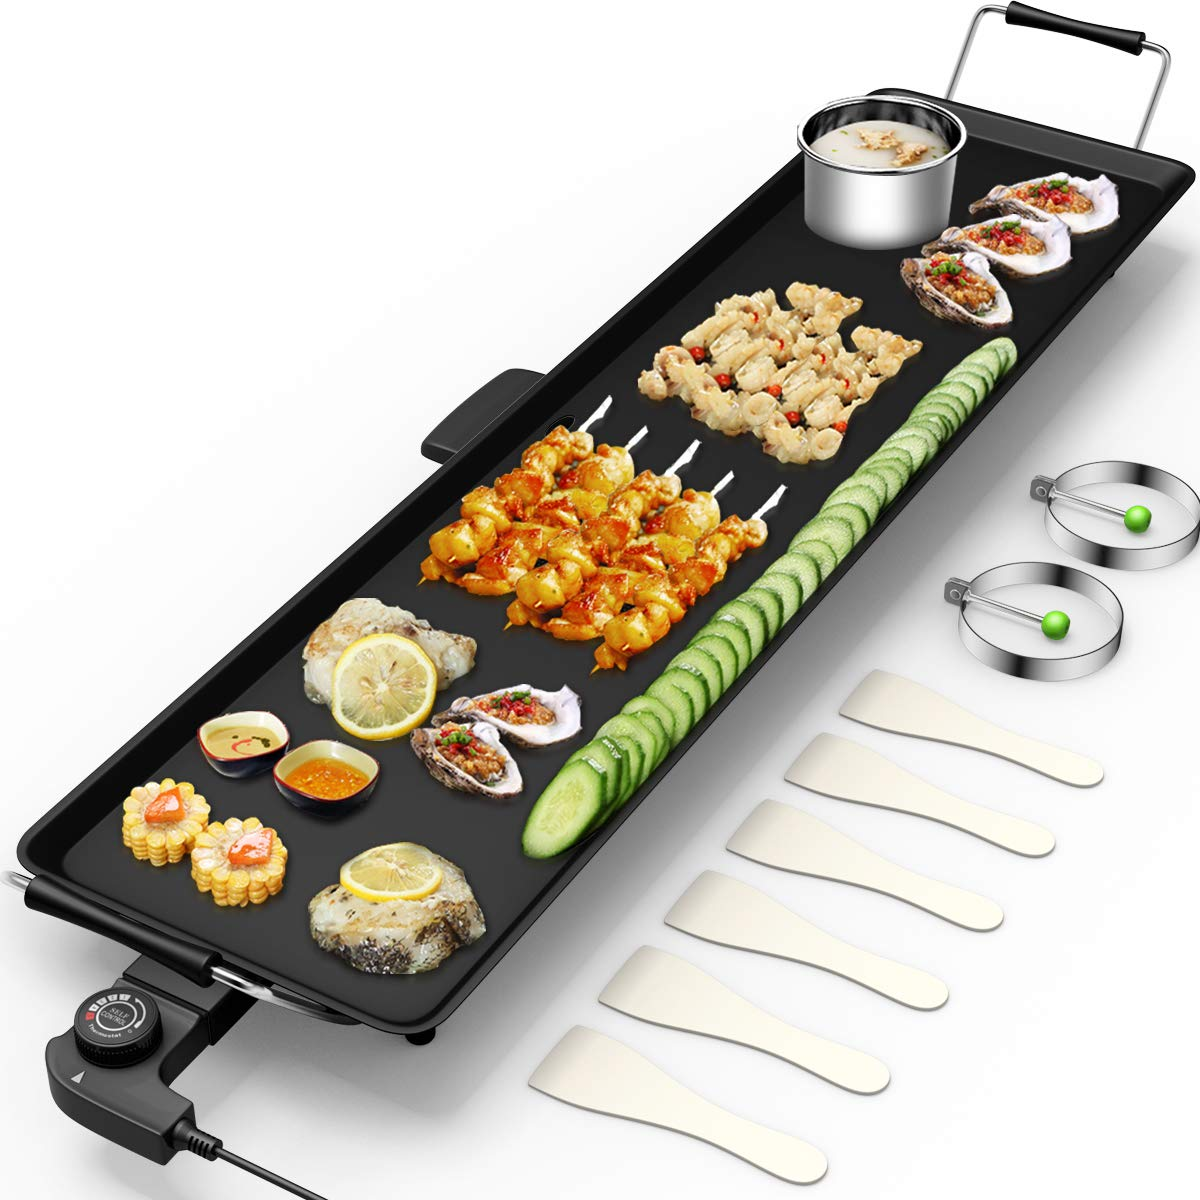 Costzon 35'' Electric Teppanyaki Table Top Grill Griddle BBQ Barbecue Nonstick Extra Large Griddle Electric for Camping Indoor Outdoor with Adjustable Temperature by Costzon